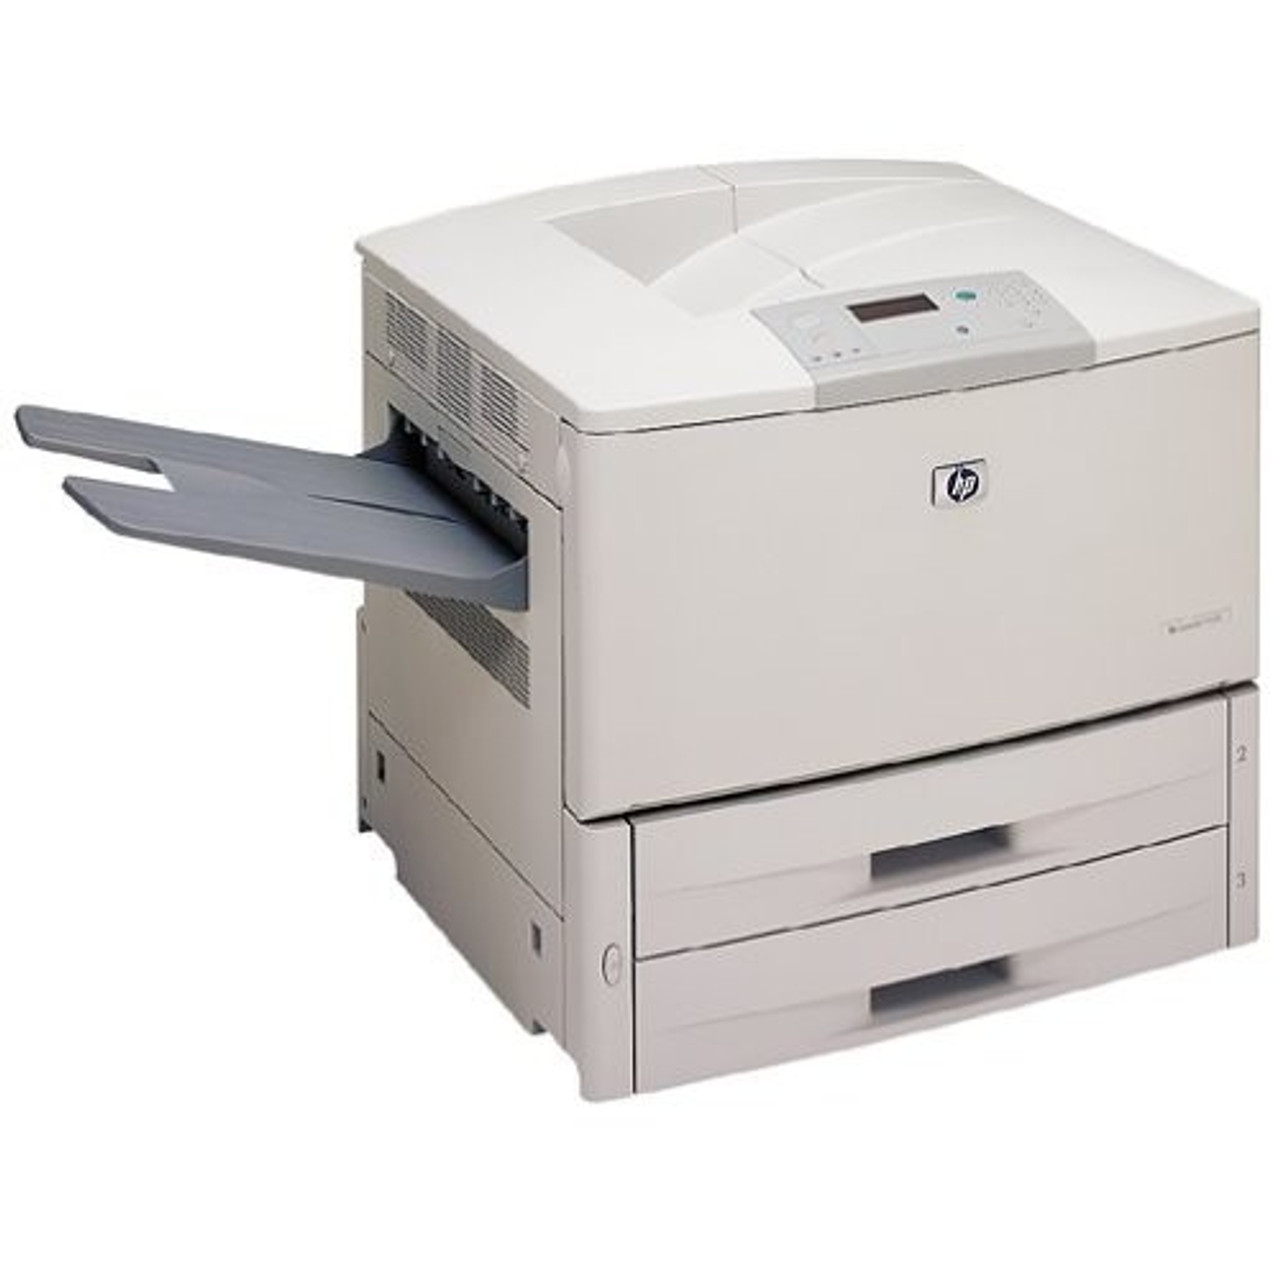 HP LaserJet 9050n - Q3722A#ABA - HP 11x17 Laser Printer for sale